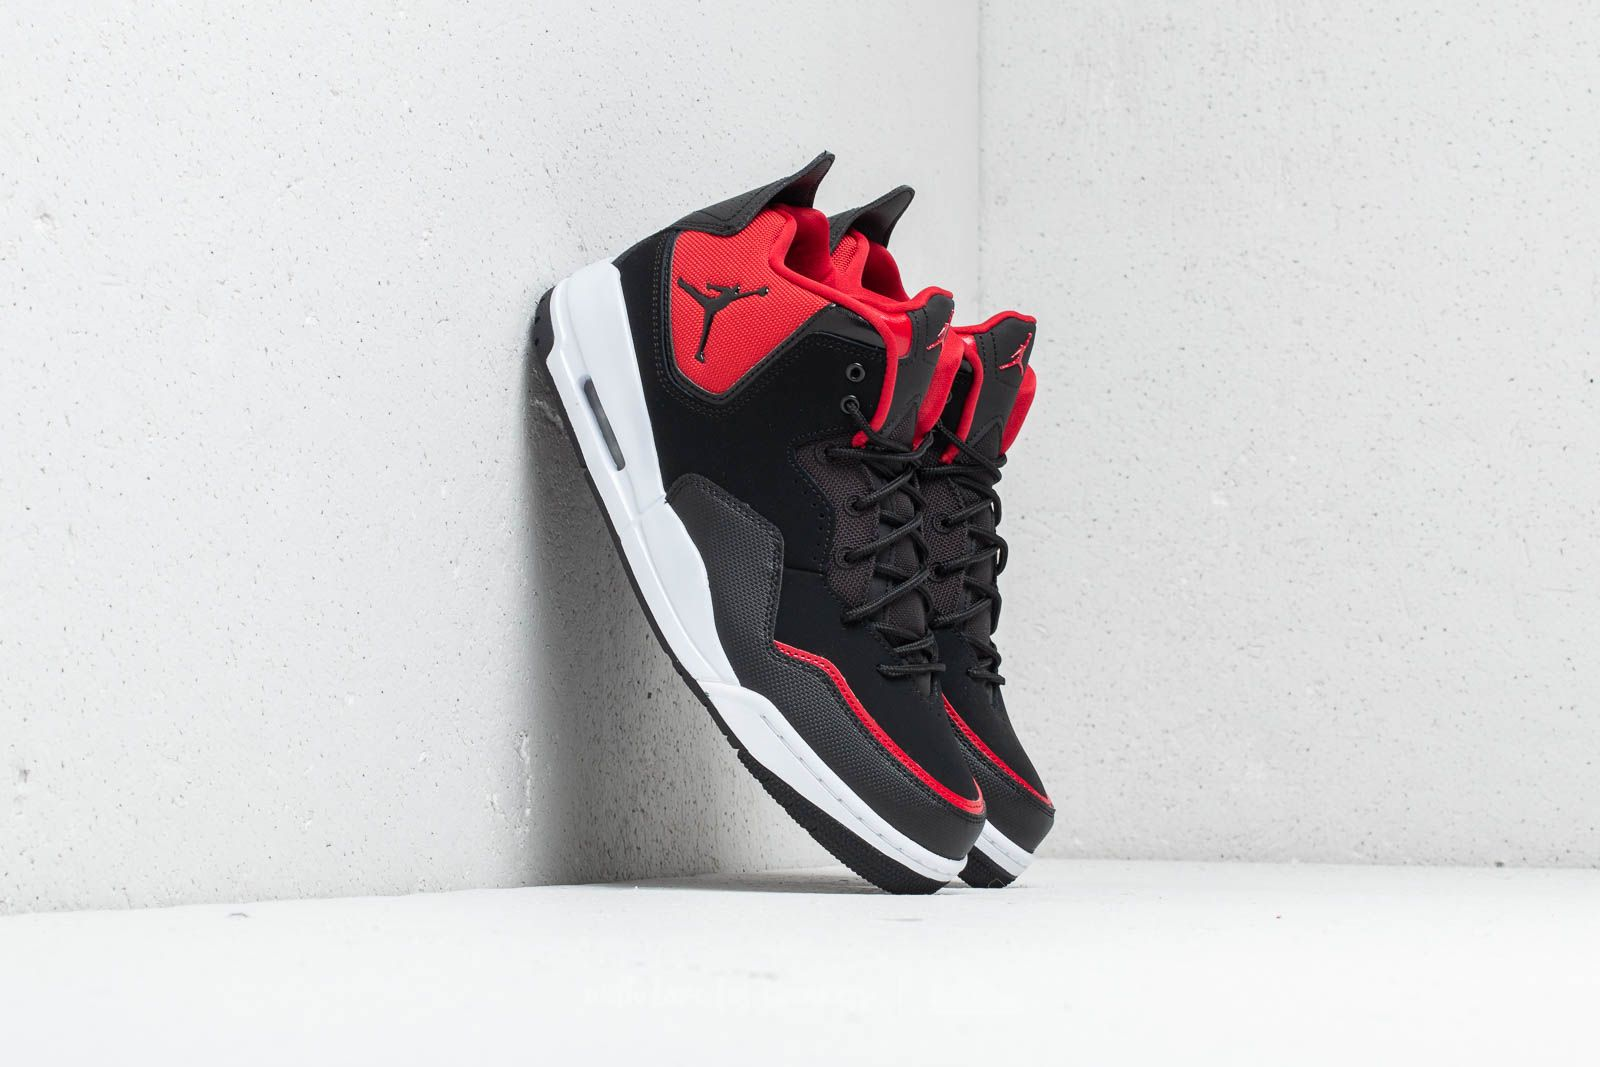 new product 58667 b7b6e Jordan Courtside 23. Black  Black-Gym Red-White